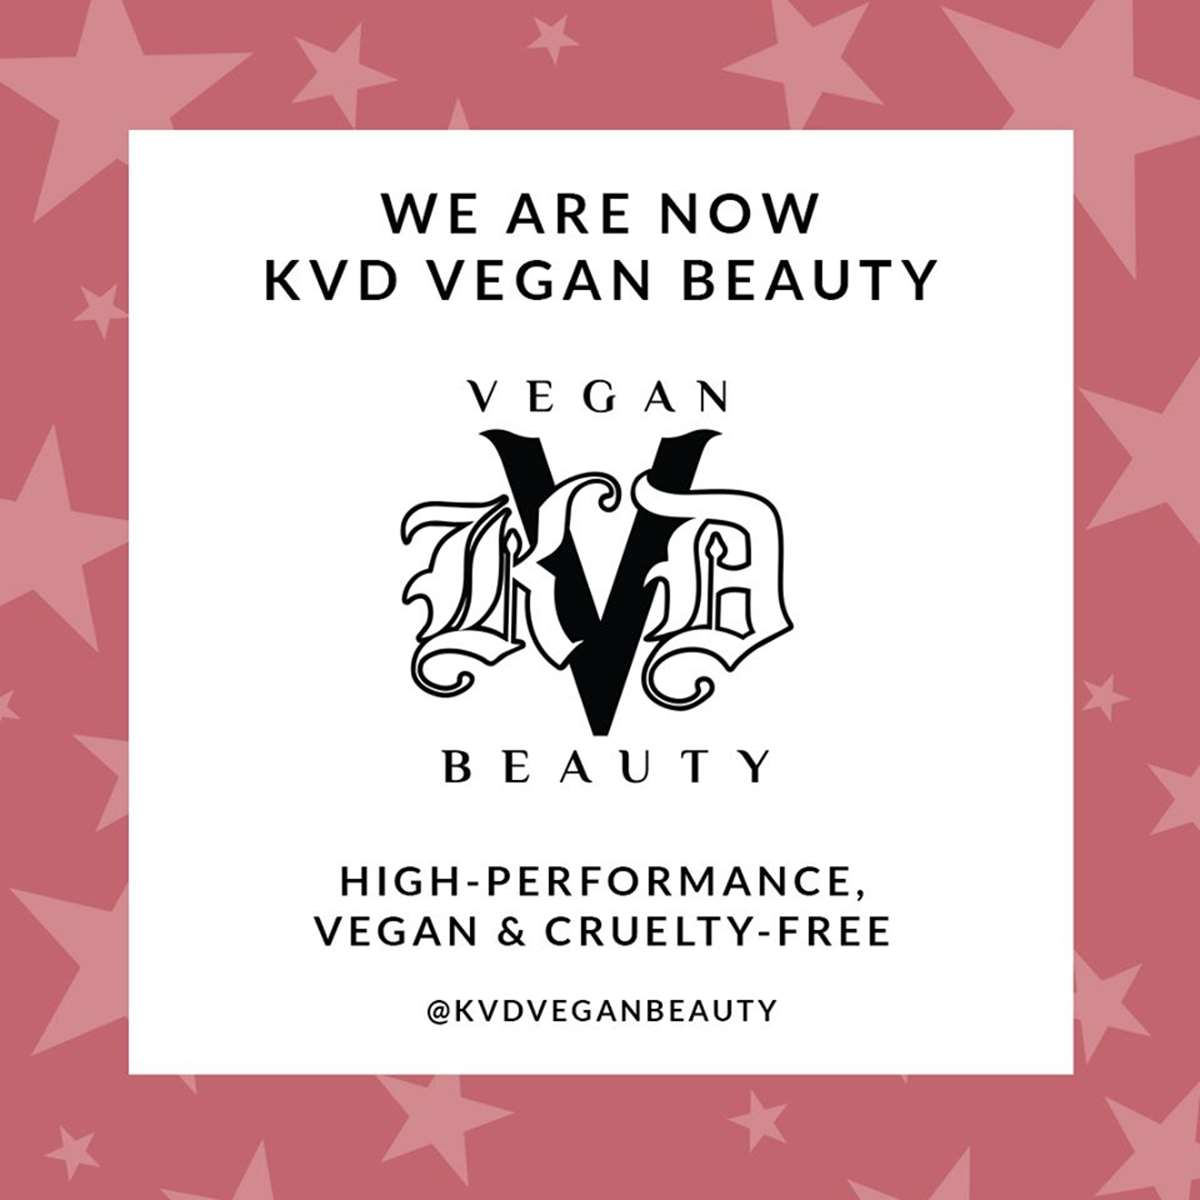 Kat von D Beauty pasa a ser KVD Vegan Beauty